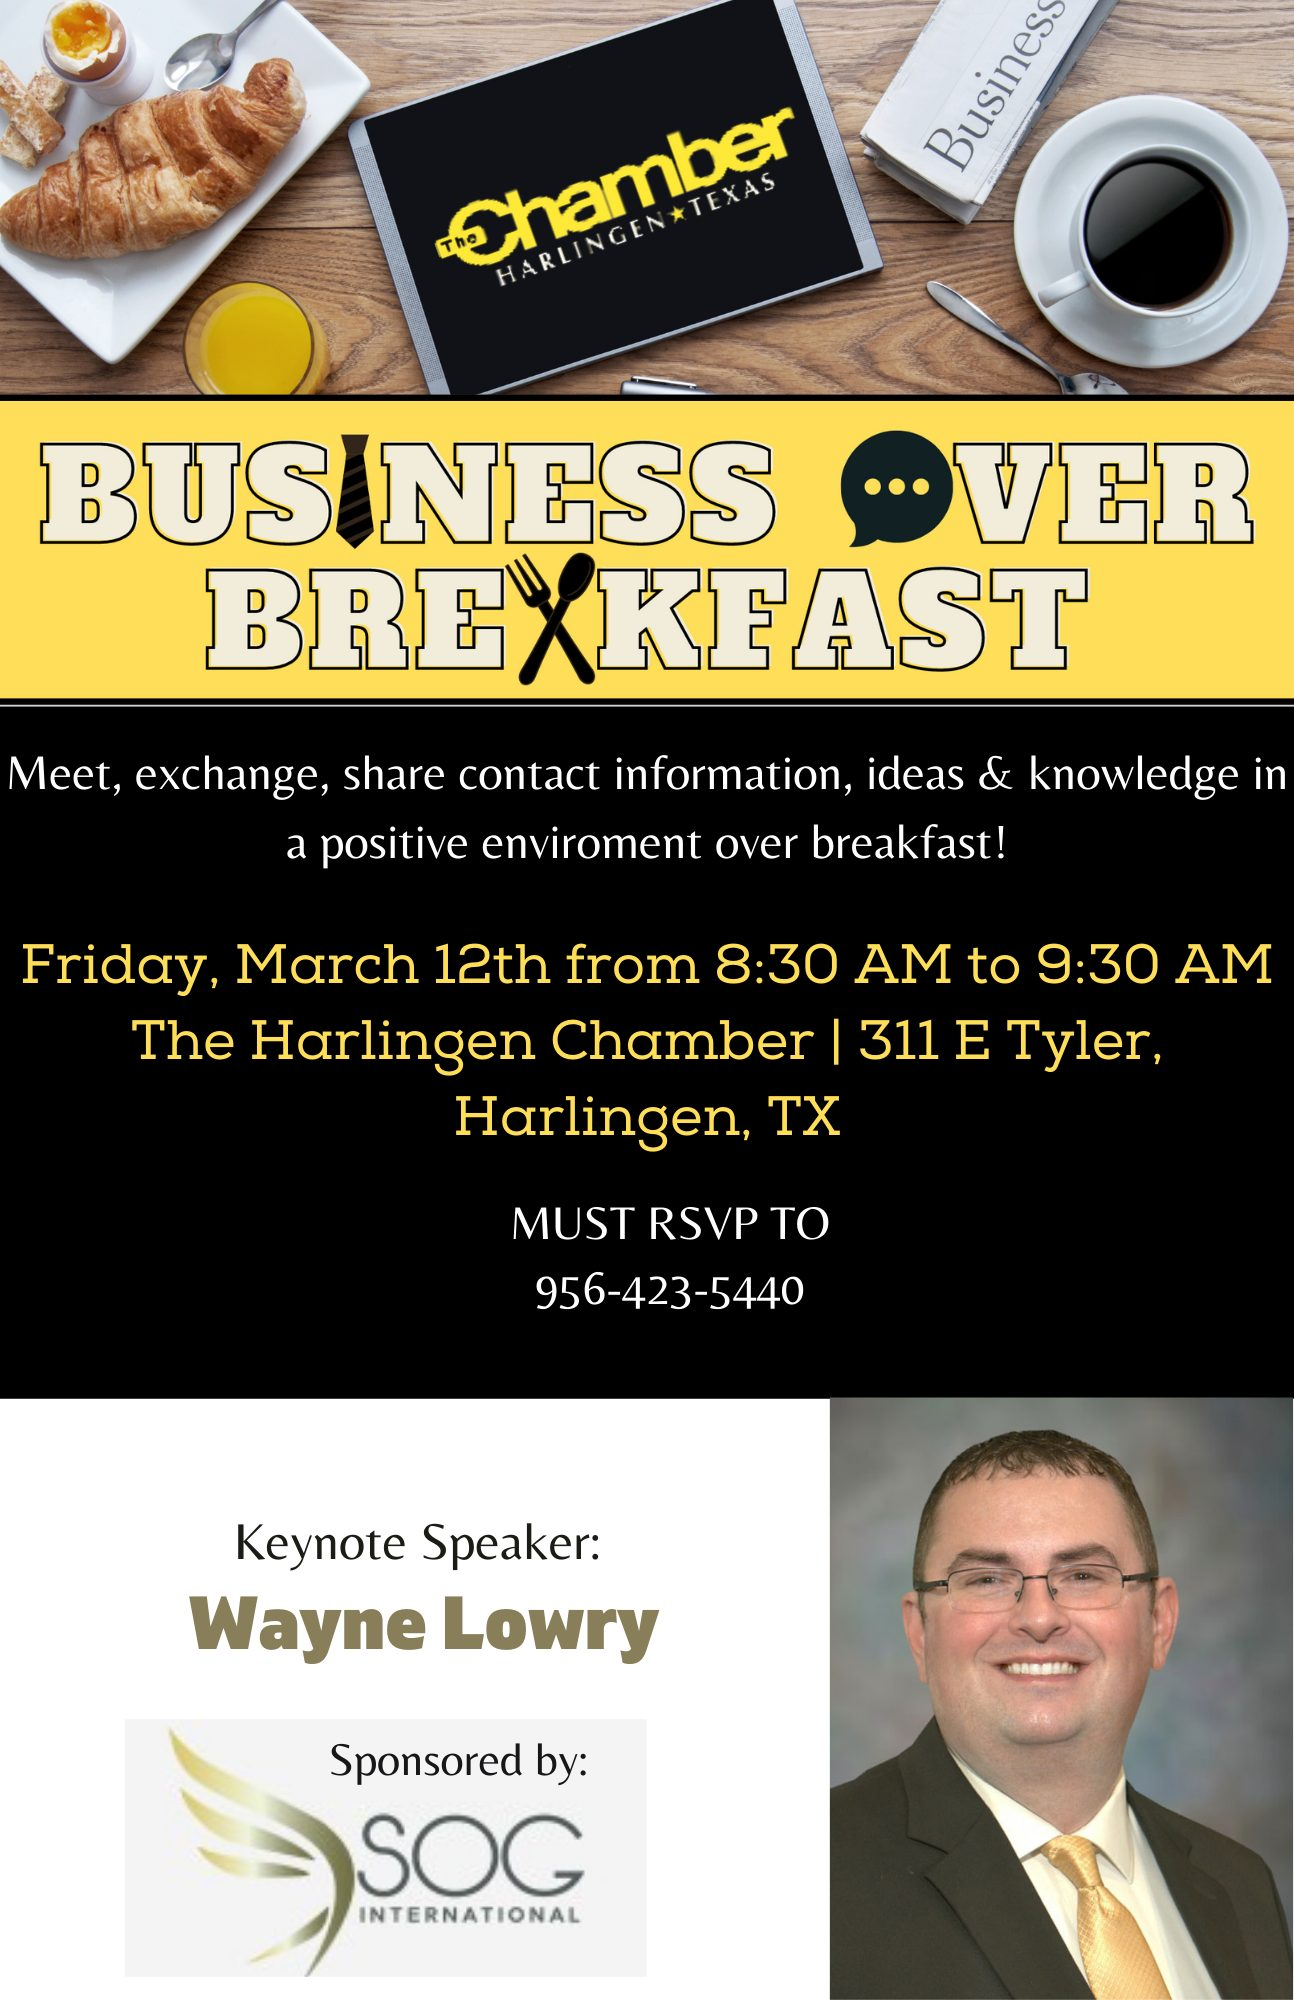 Meet, exchange, share contact information, ideas & knowledge in a positive enviroment over breakfast! (4)